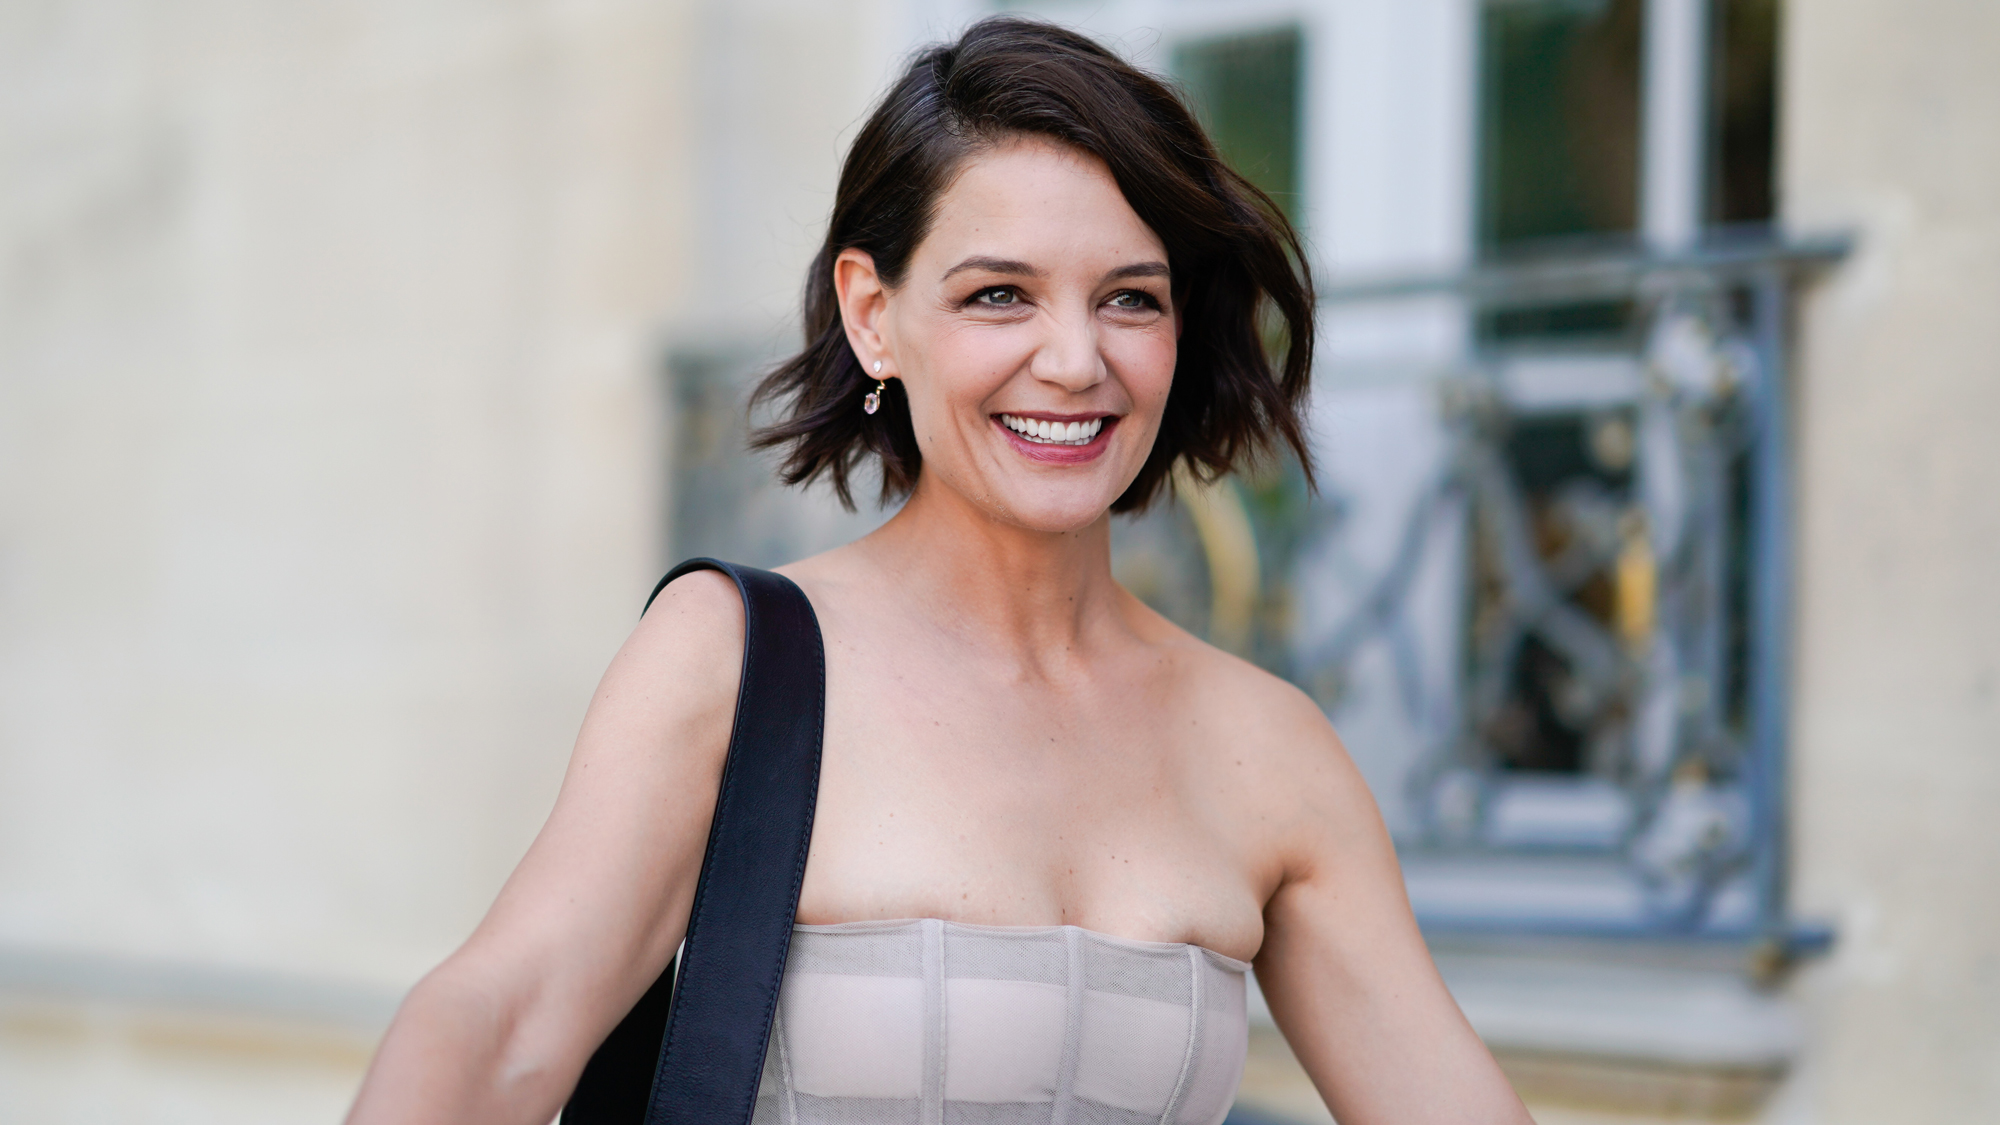 Katie Holmes Loves This Firming German Face Mask, and It's Seriously Discounted Right Now